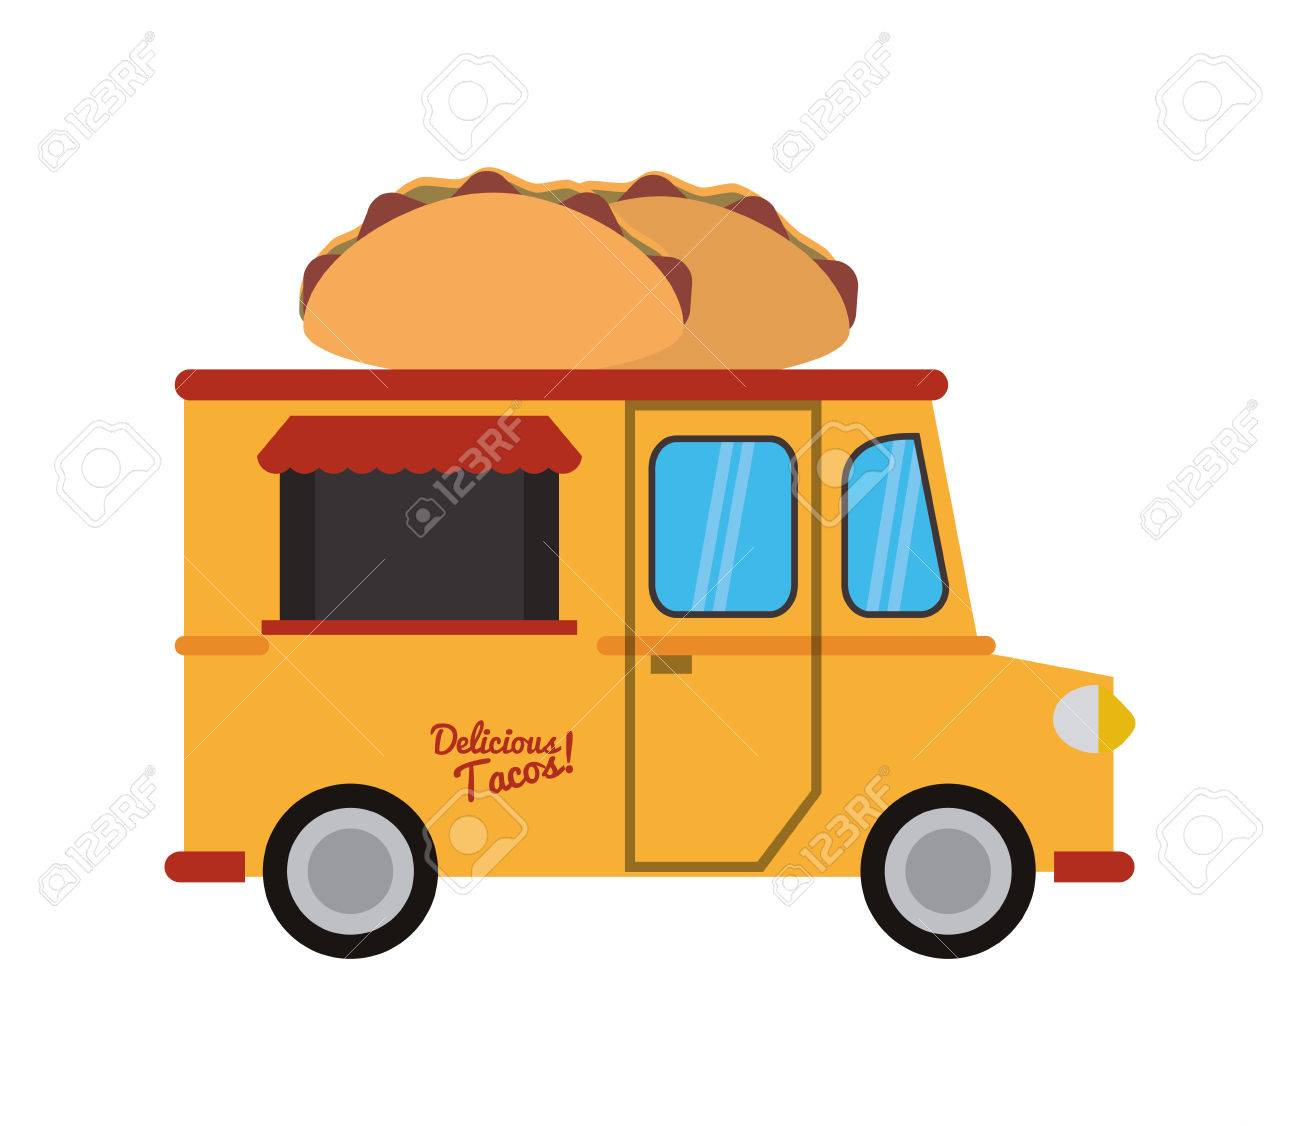 Taco Truck Delivery Fast Food Urban Business Icon Flat And Isolated